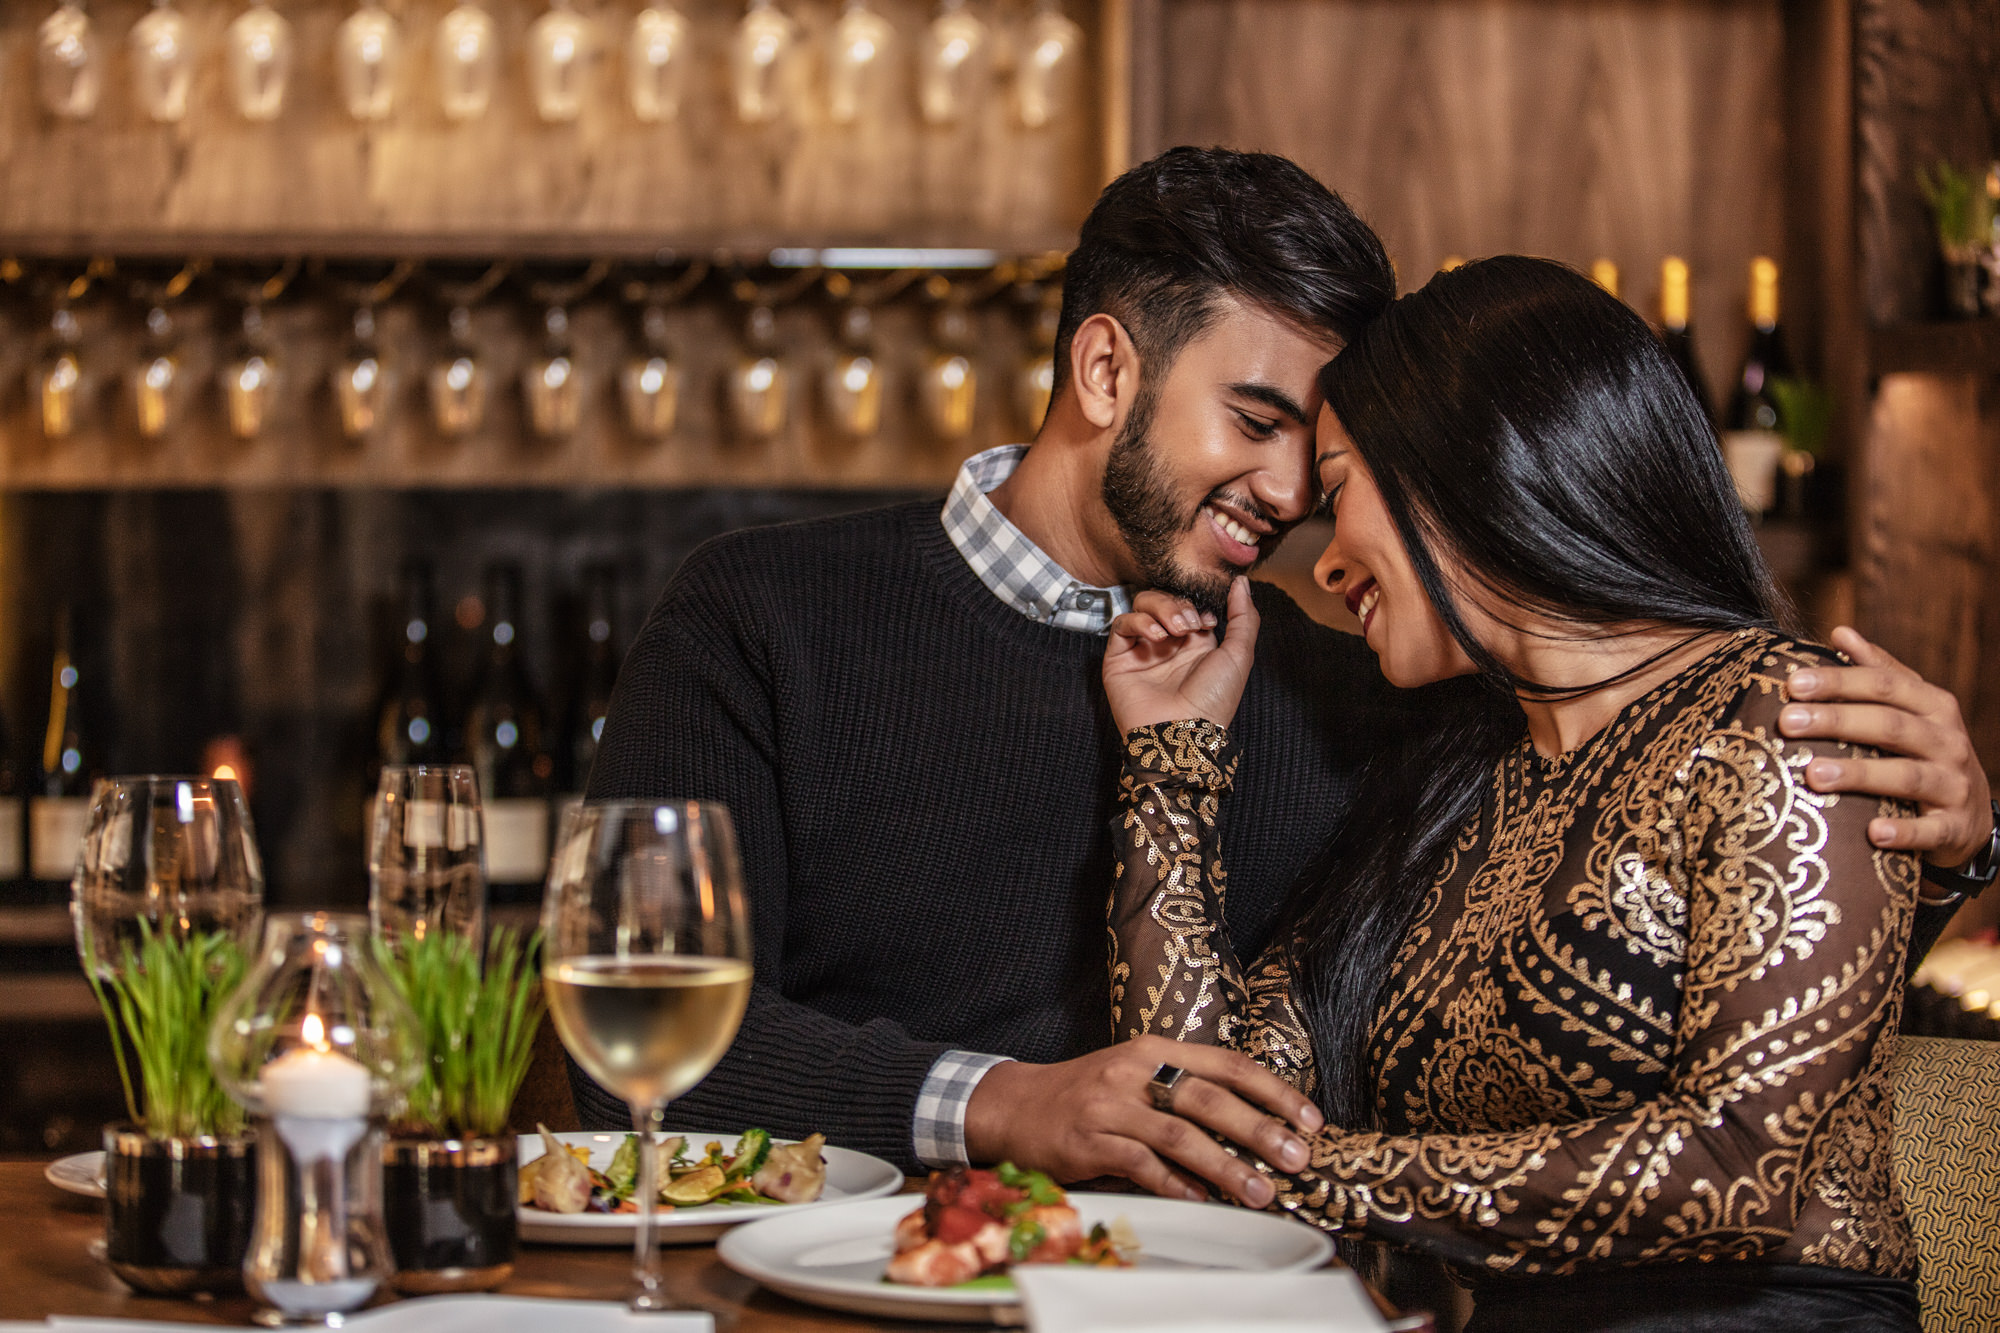 Image of man and woman wine tasting for date night at the Southern Sun The Cullinan Hotel for Tsogo Sun's Image Library & Content Library by Michelle Wastie Photography